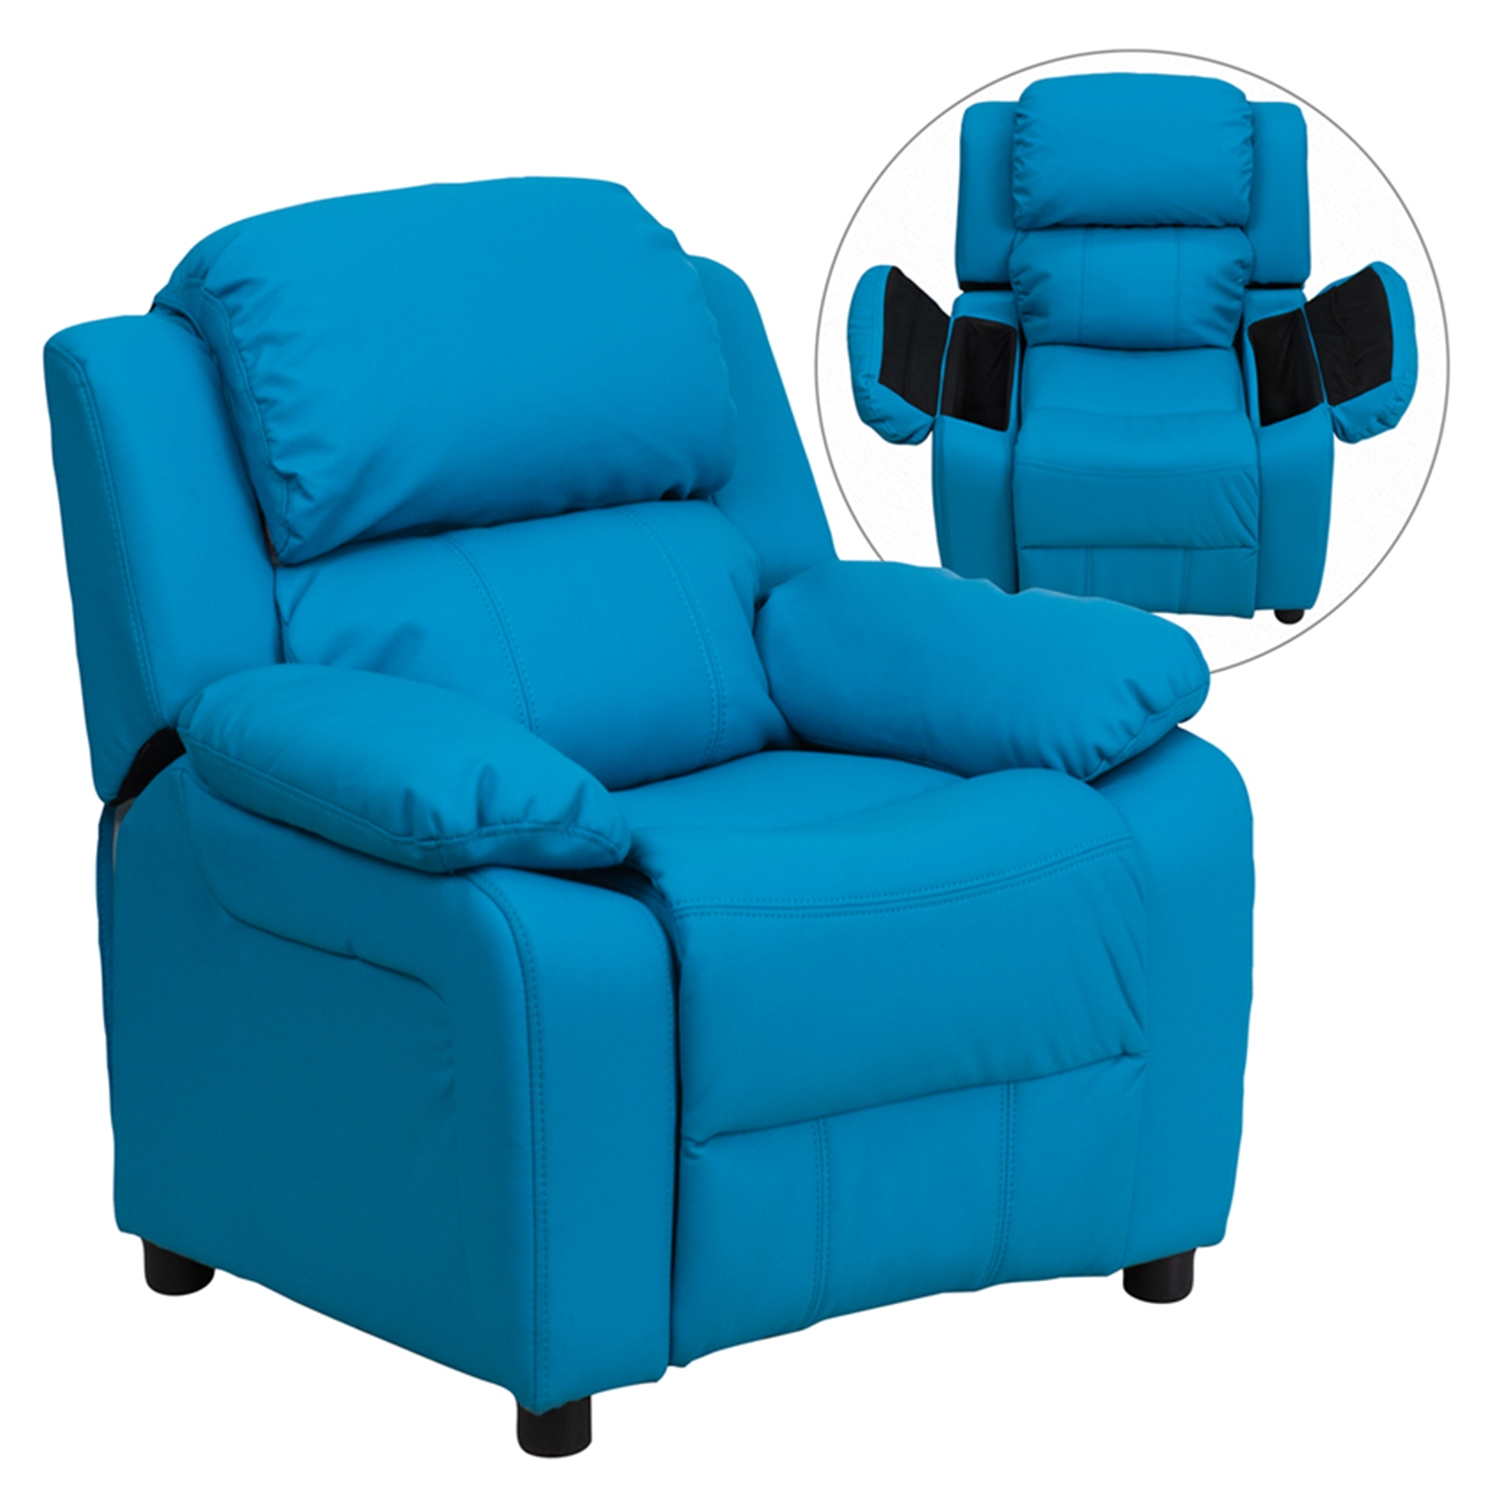 Deluxe Padded Upholstered Kids Recliner   Storage Arms, Turquoise    FLSH BT 7985 ...